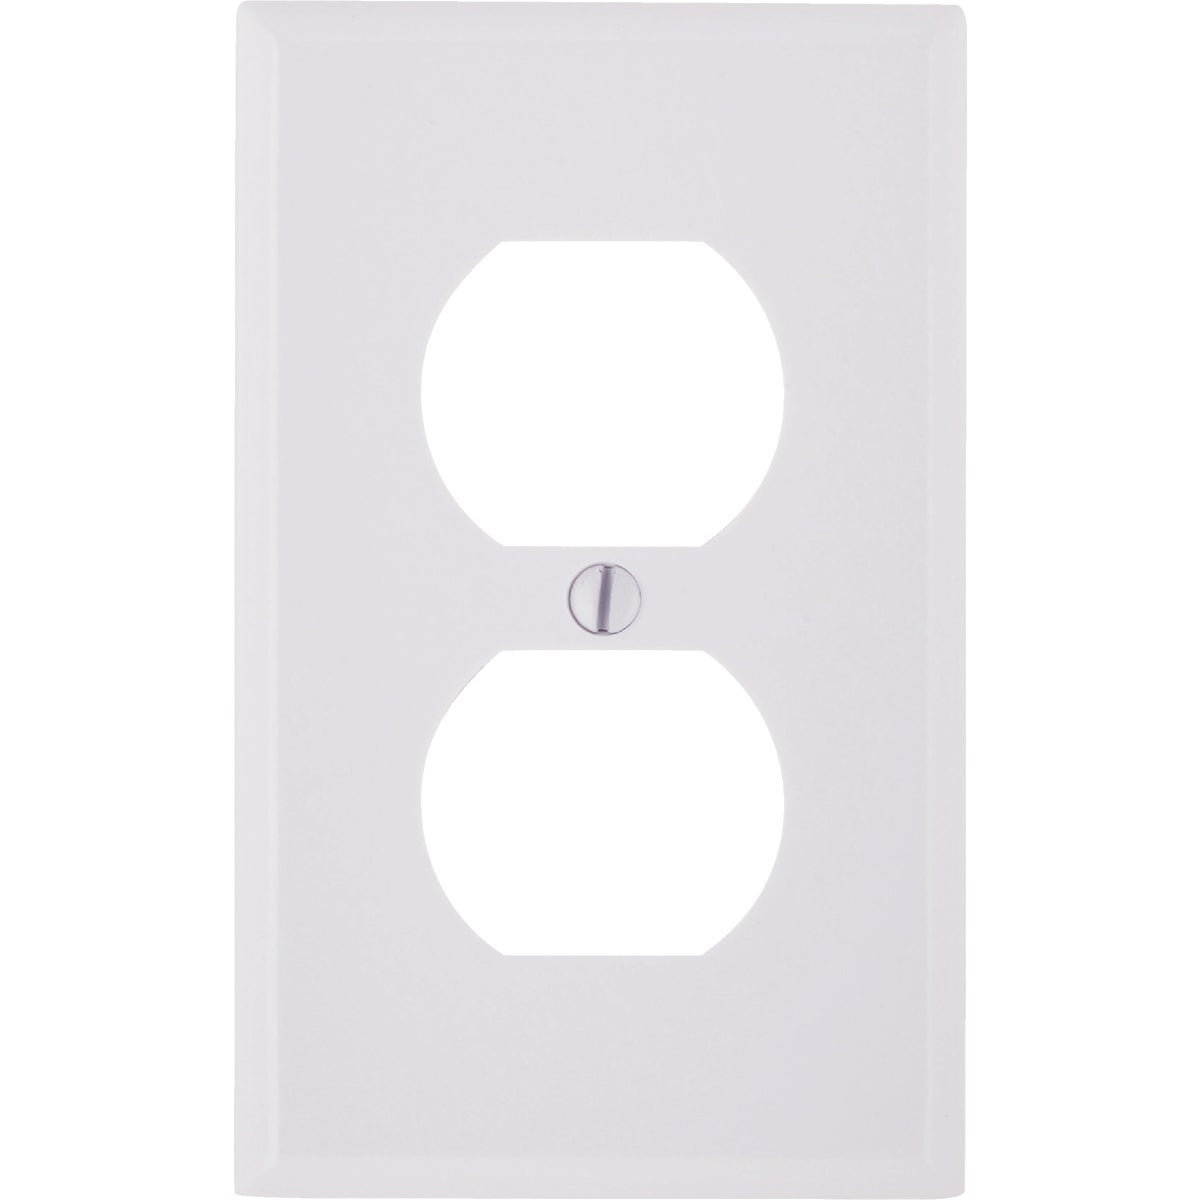 WHT 2-OUTLET WALL PLATE